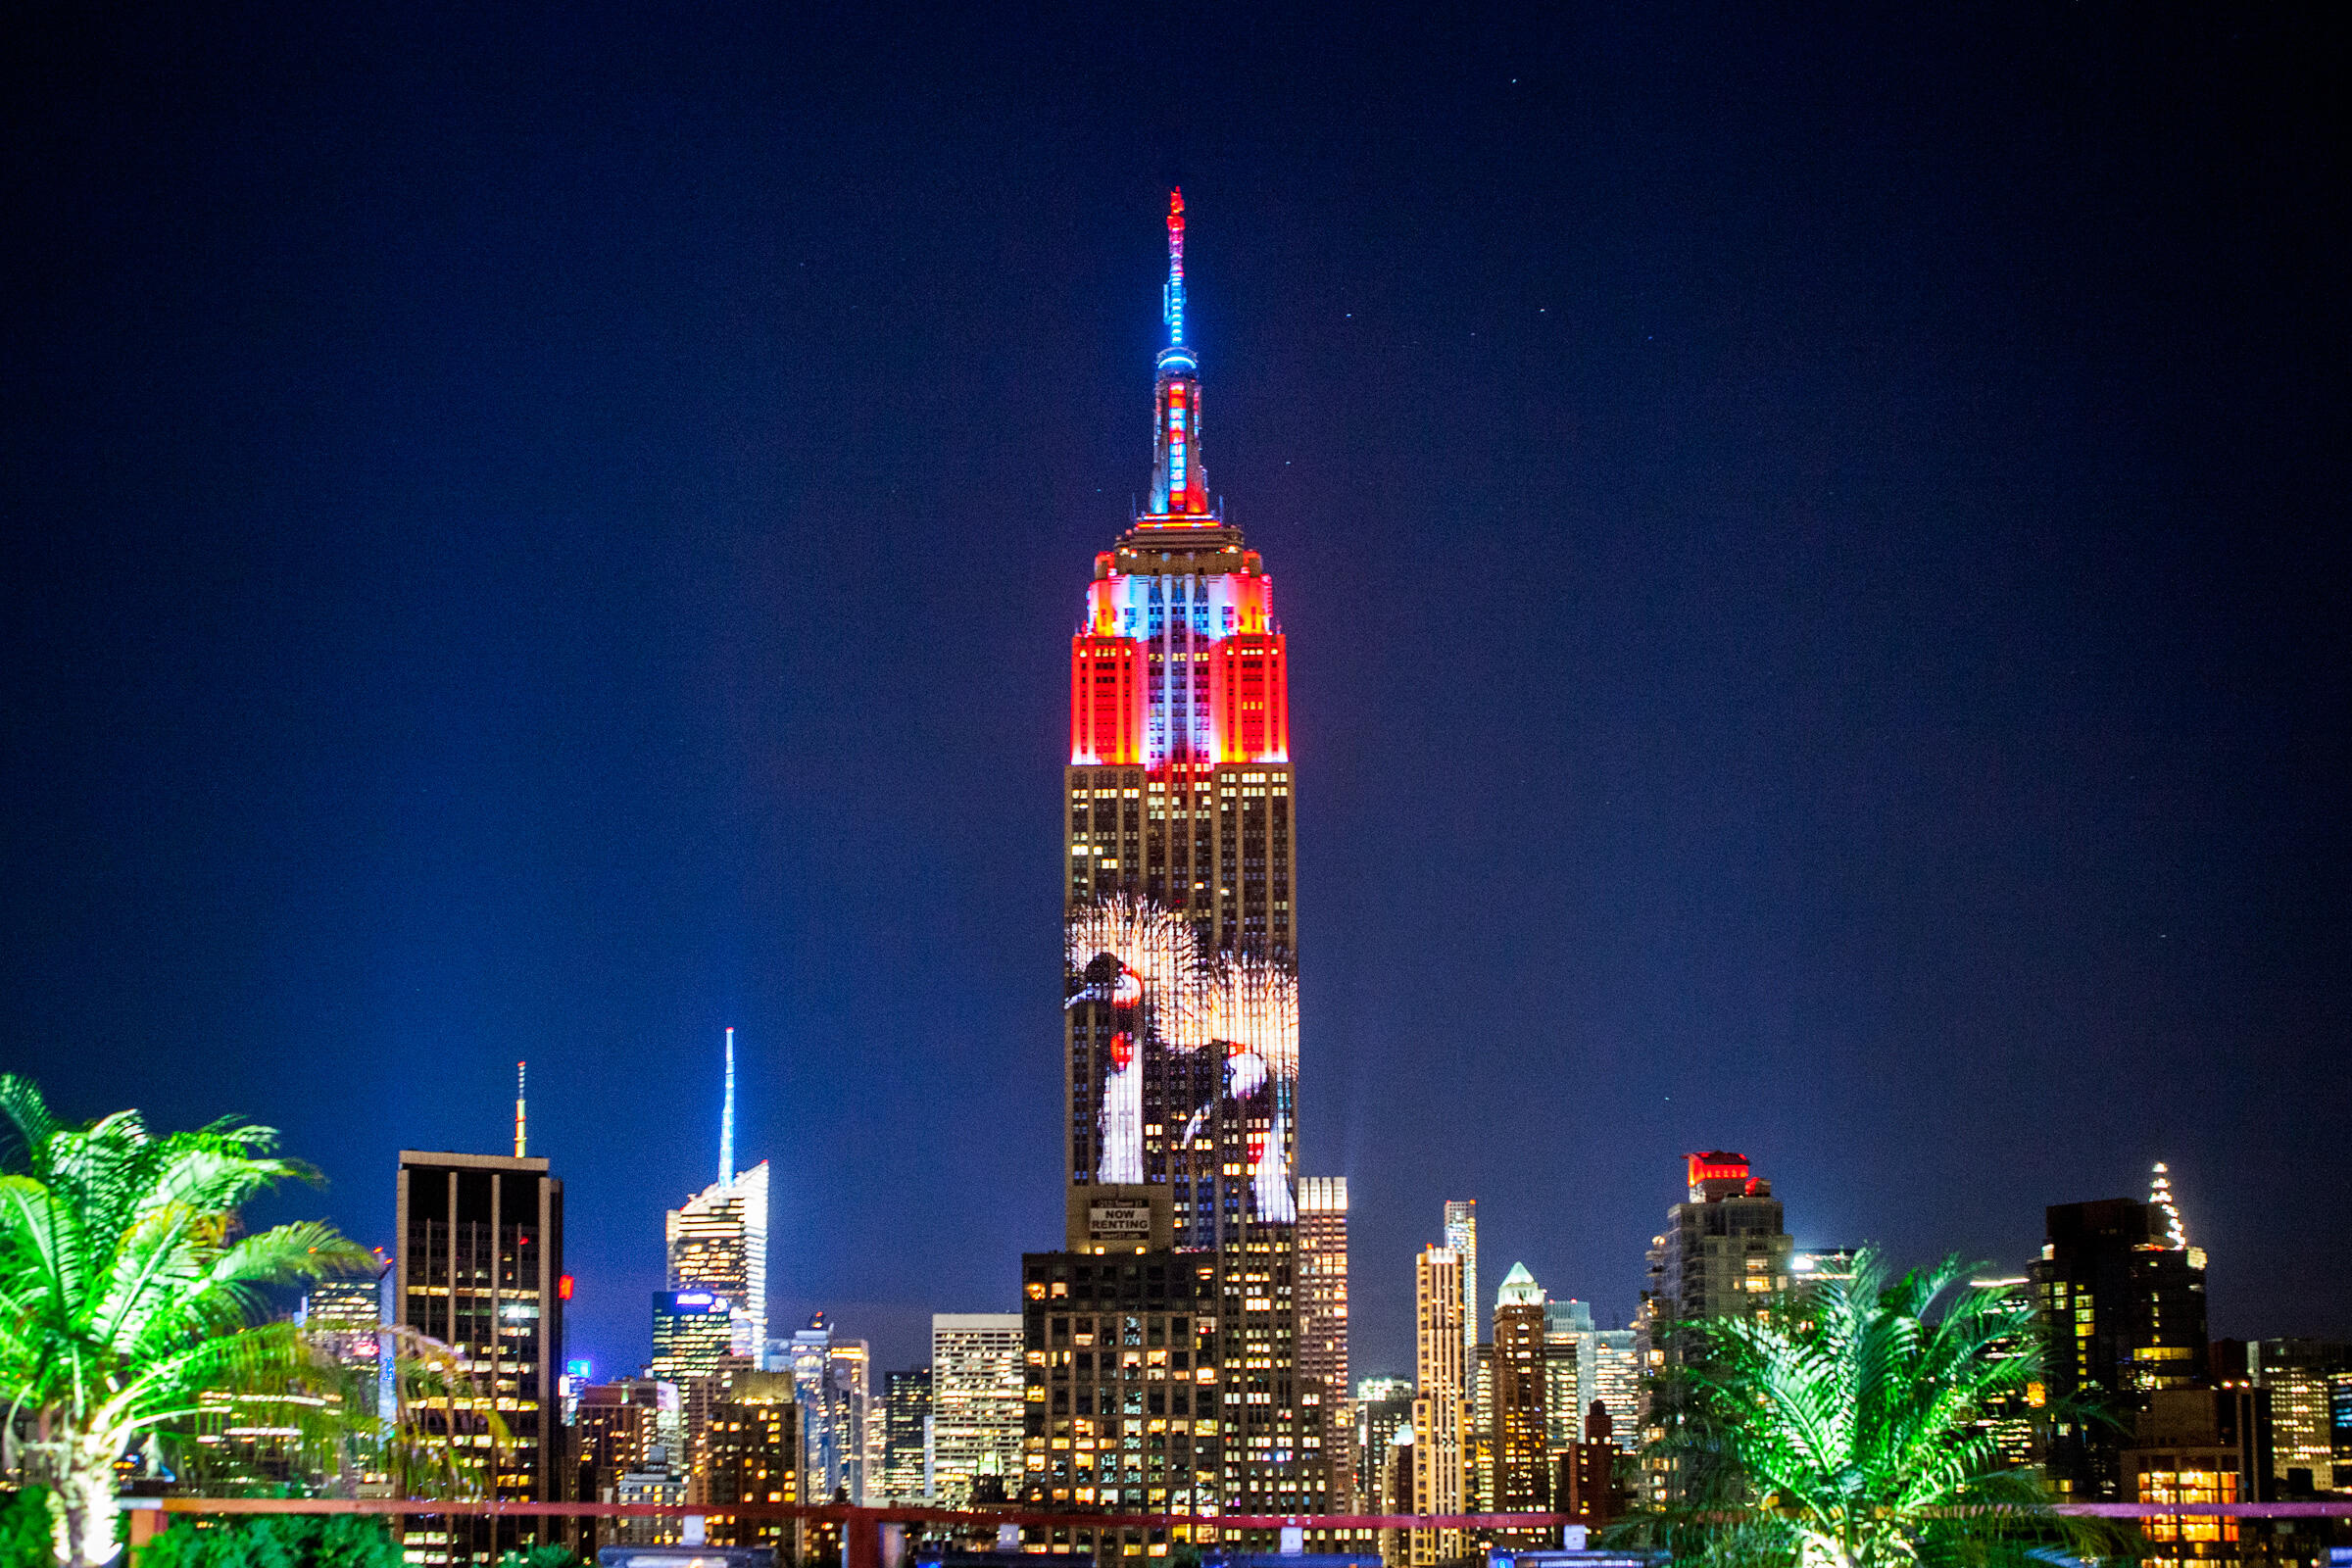 Endangered Species Take Over Empire State Building | Audubon